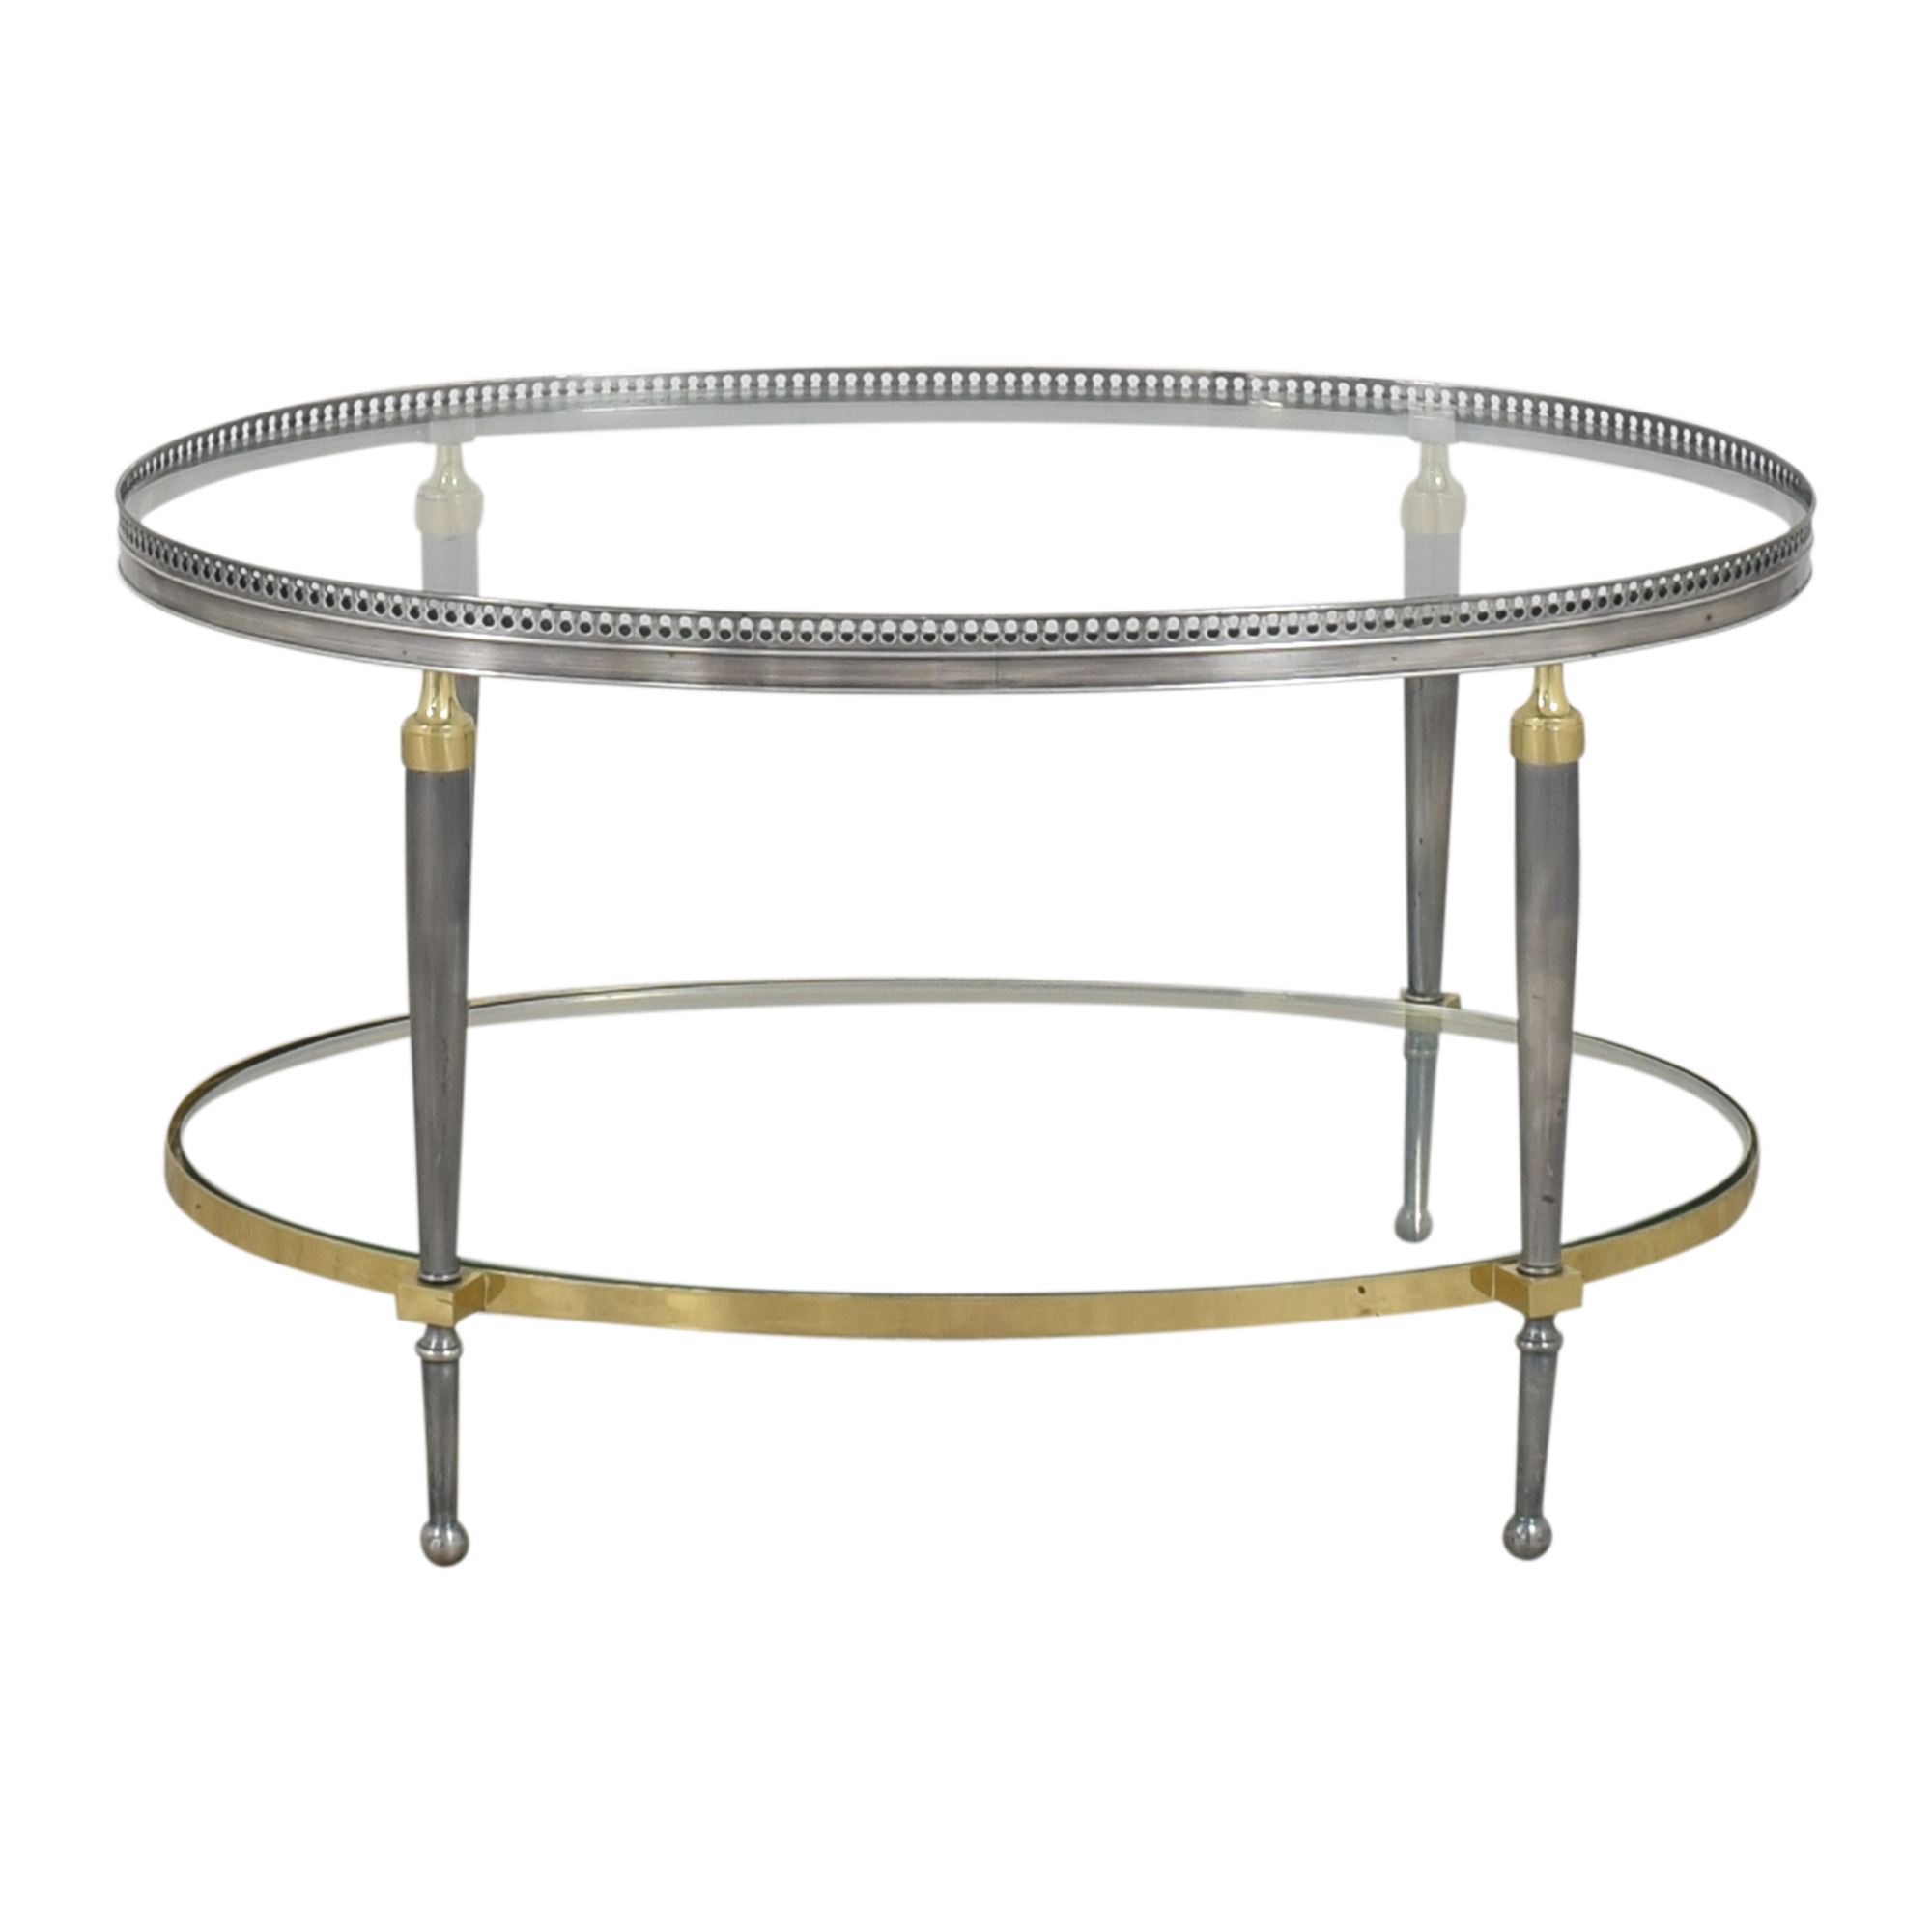 Trouvailles Trouvailles Oval Coffee Table nj